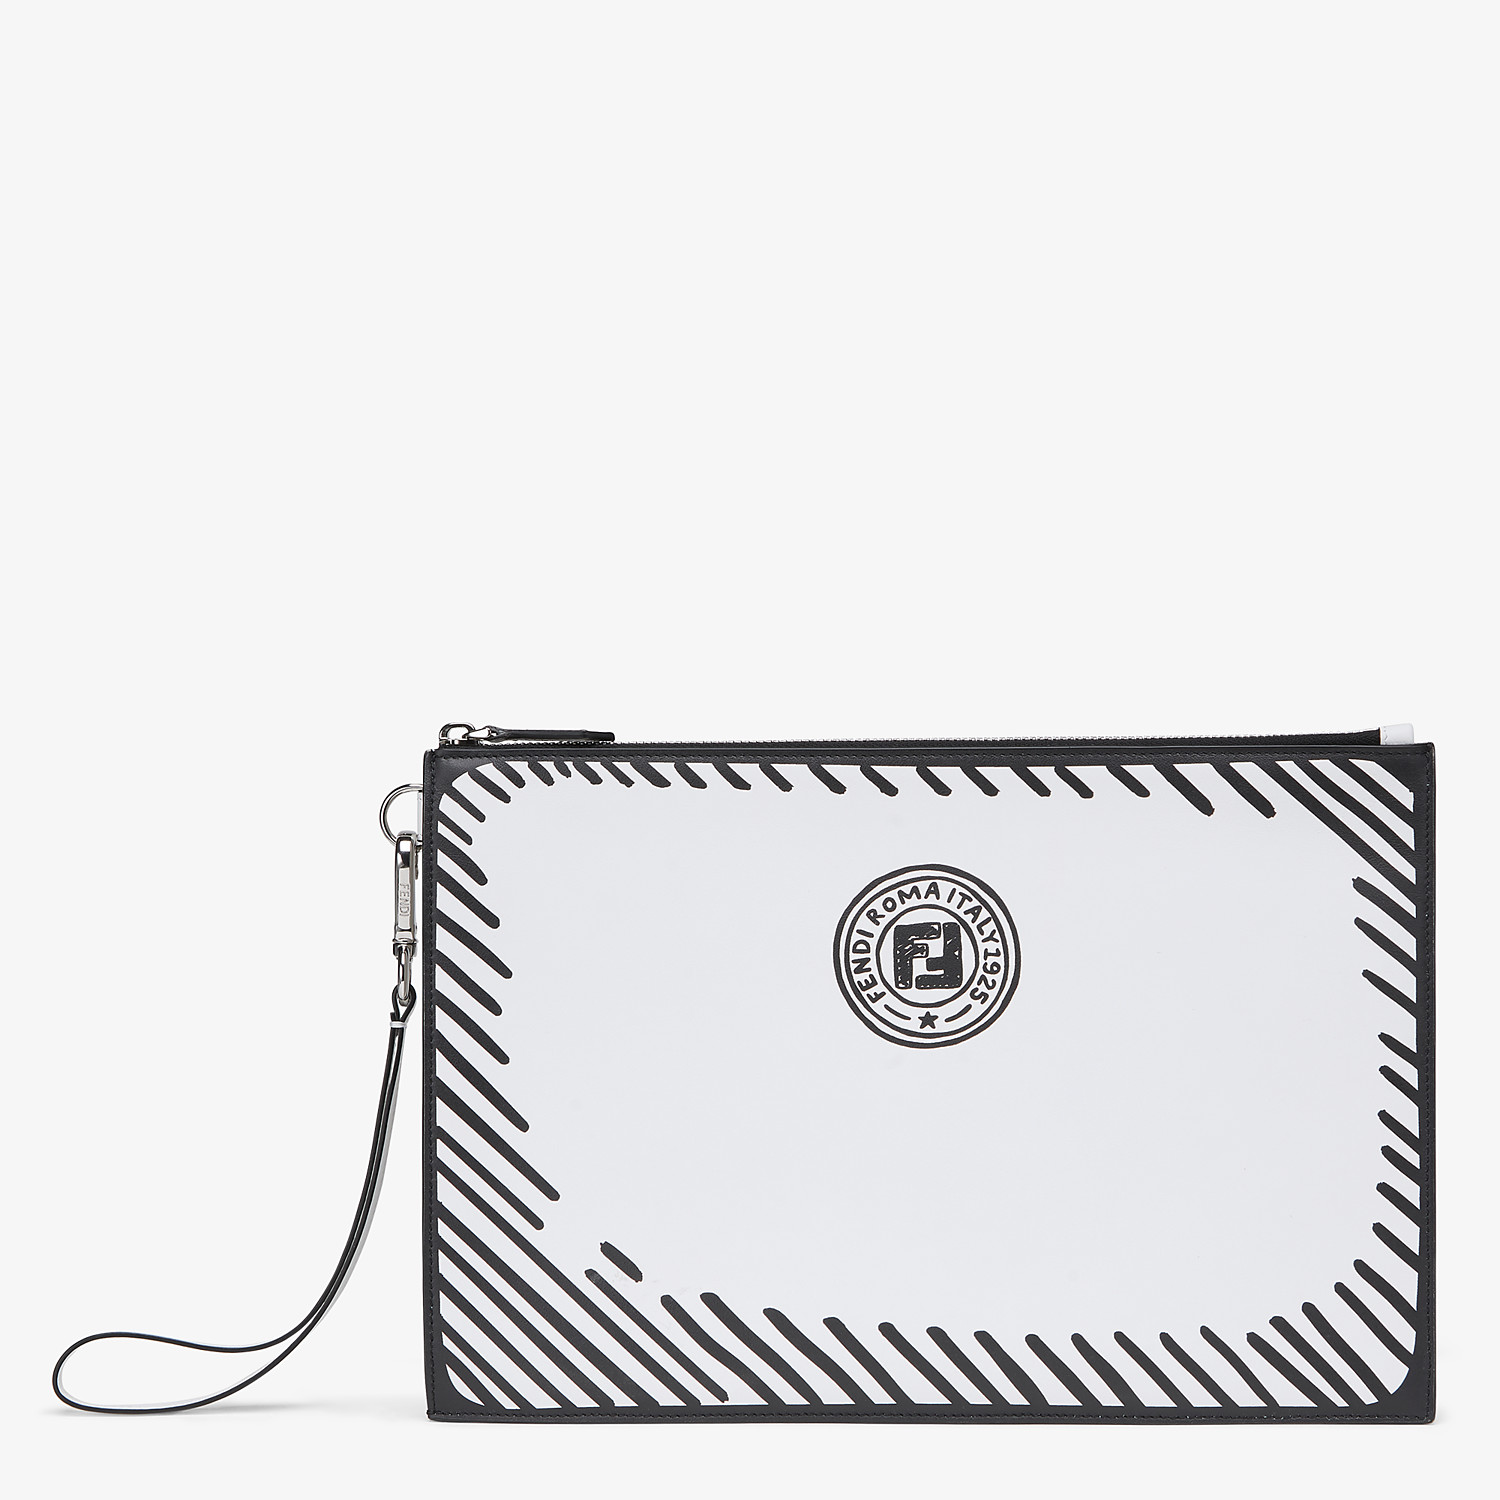 FENDI FLAT POUCH - Fendi Roma Joshua Vides leather bag - view 1 detail